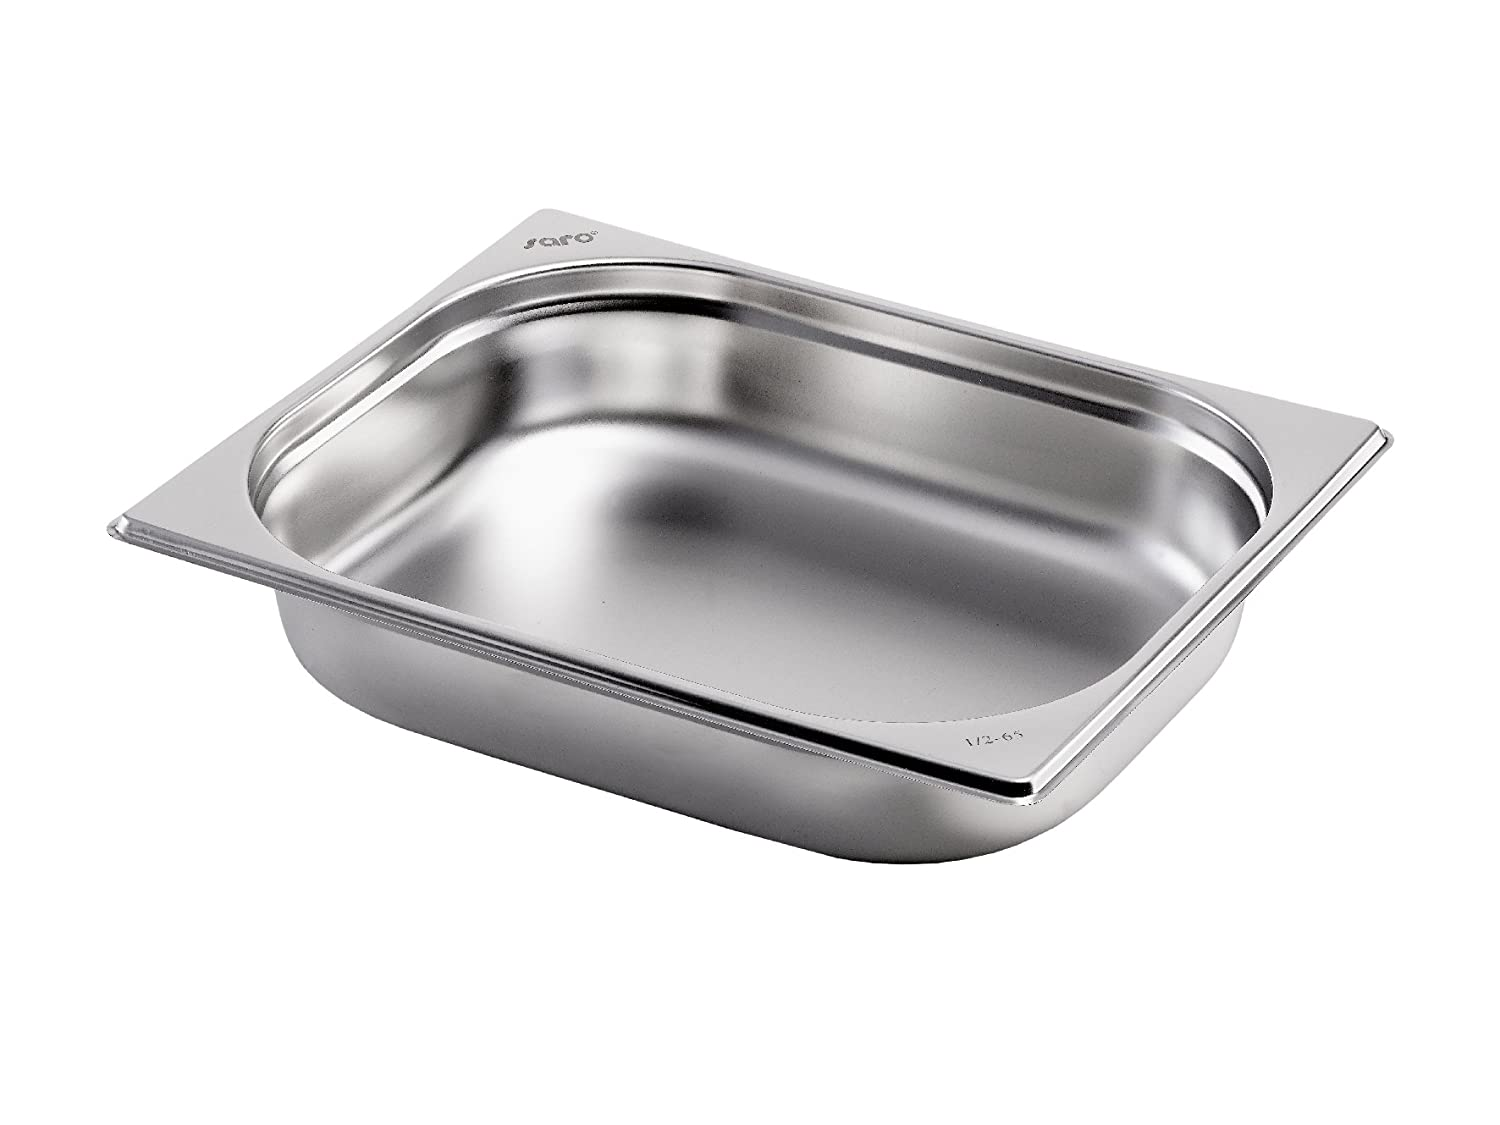 Saro Gastronorm Container 1/2 Stainless Steel 200 mm Deep, Silver, 26.5 x 32.5 x 20 cm 1/2 GN 200 mm tief